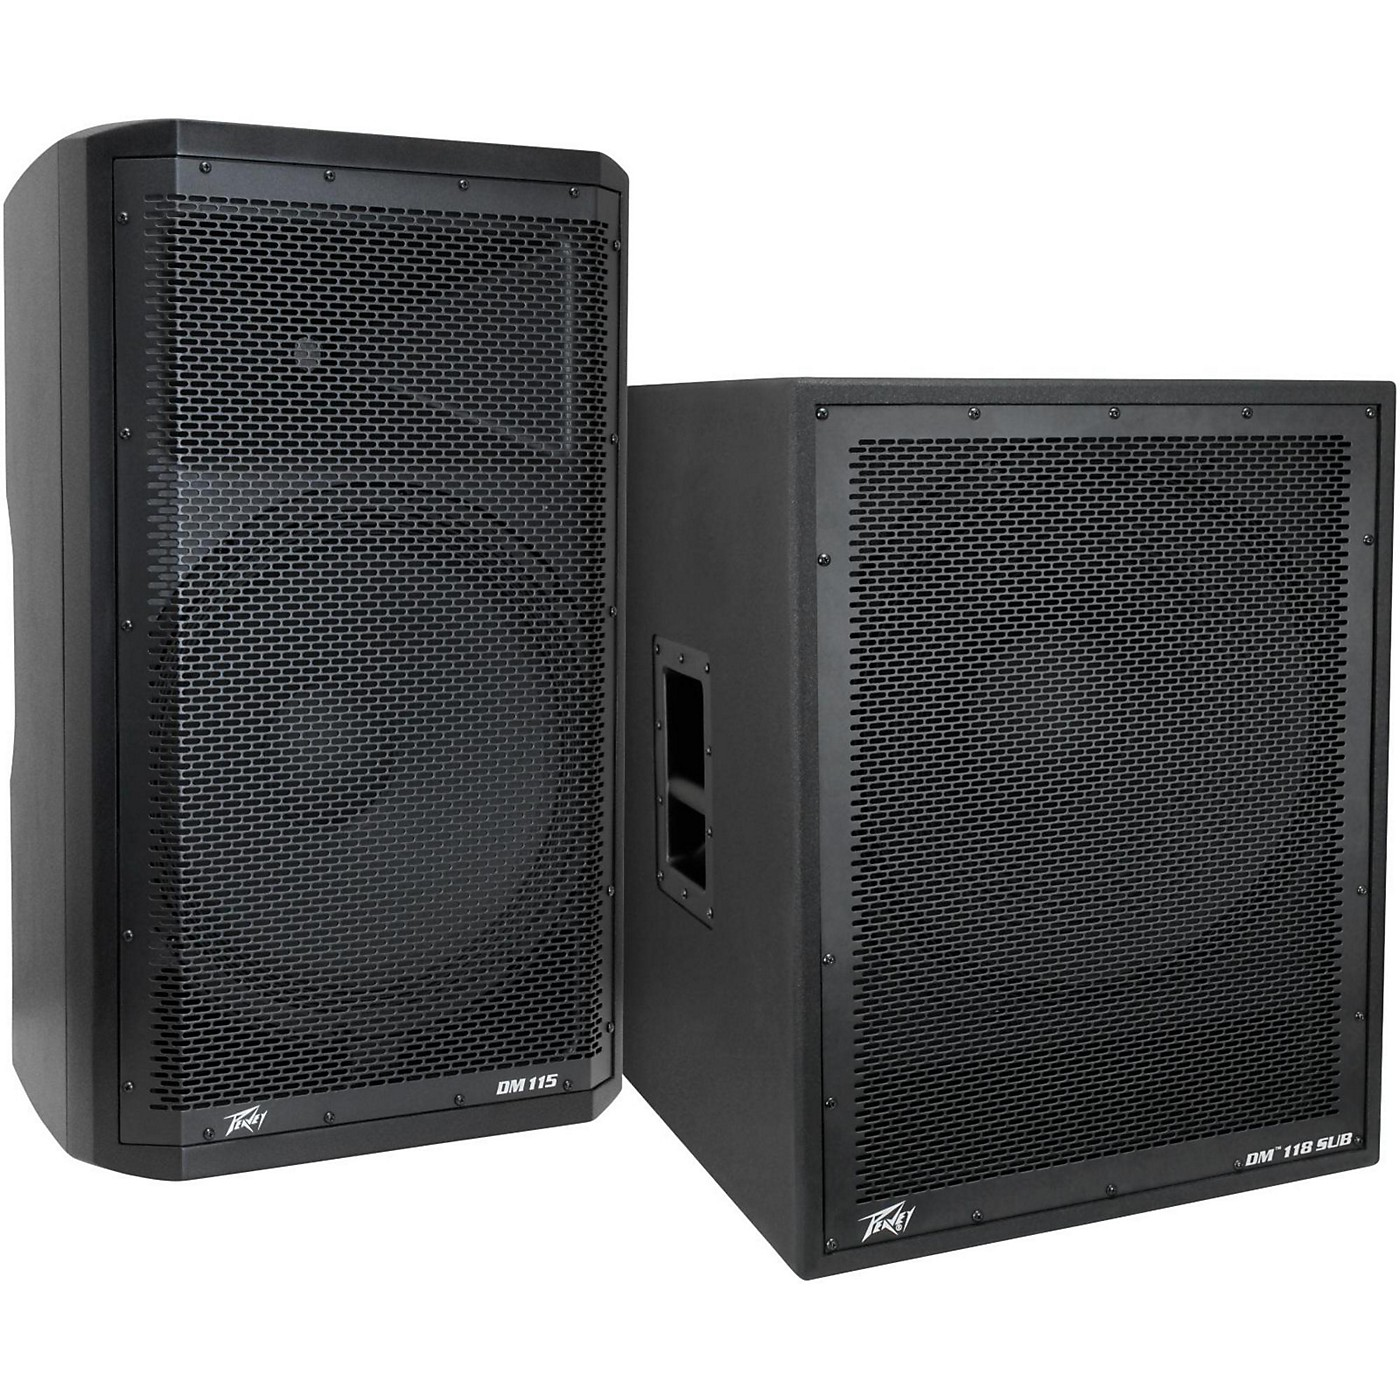 Peavey Dark Matter DM115 Powered Speaker and DM118 Sub thumbnail